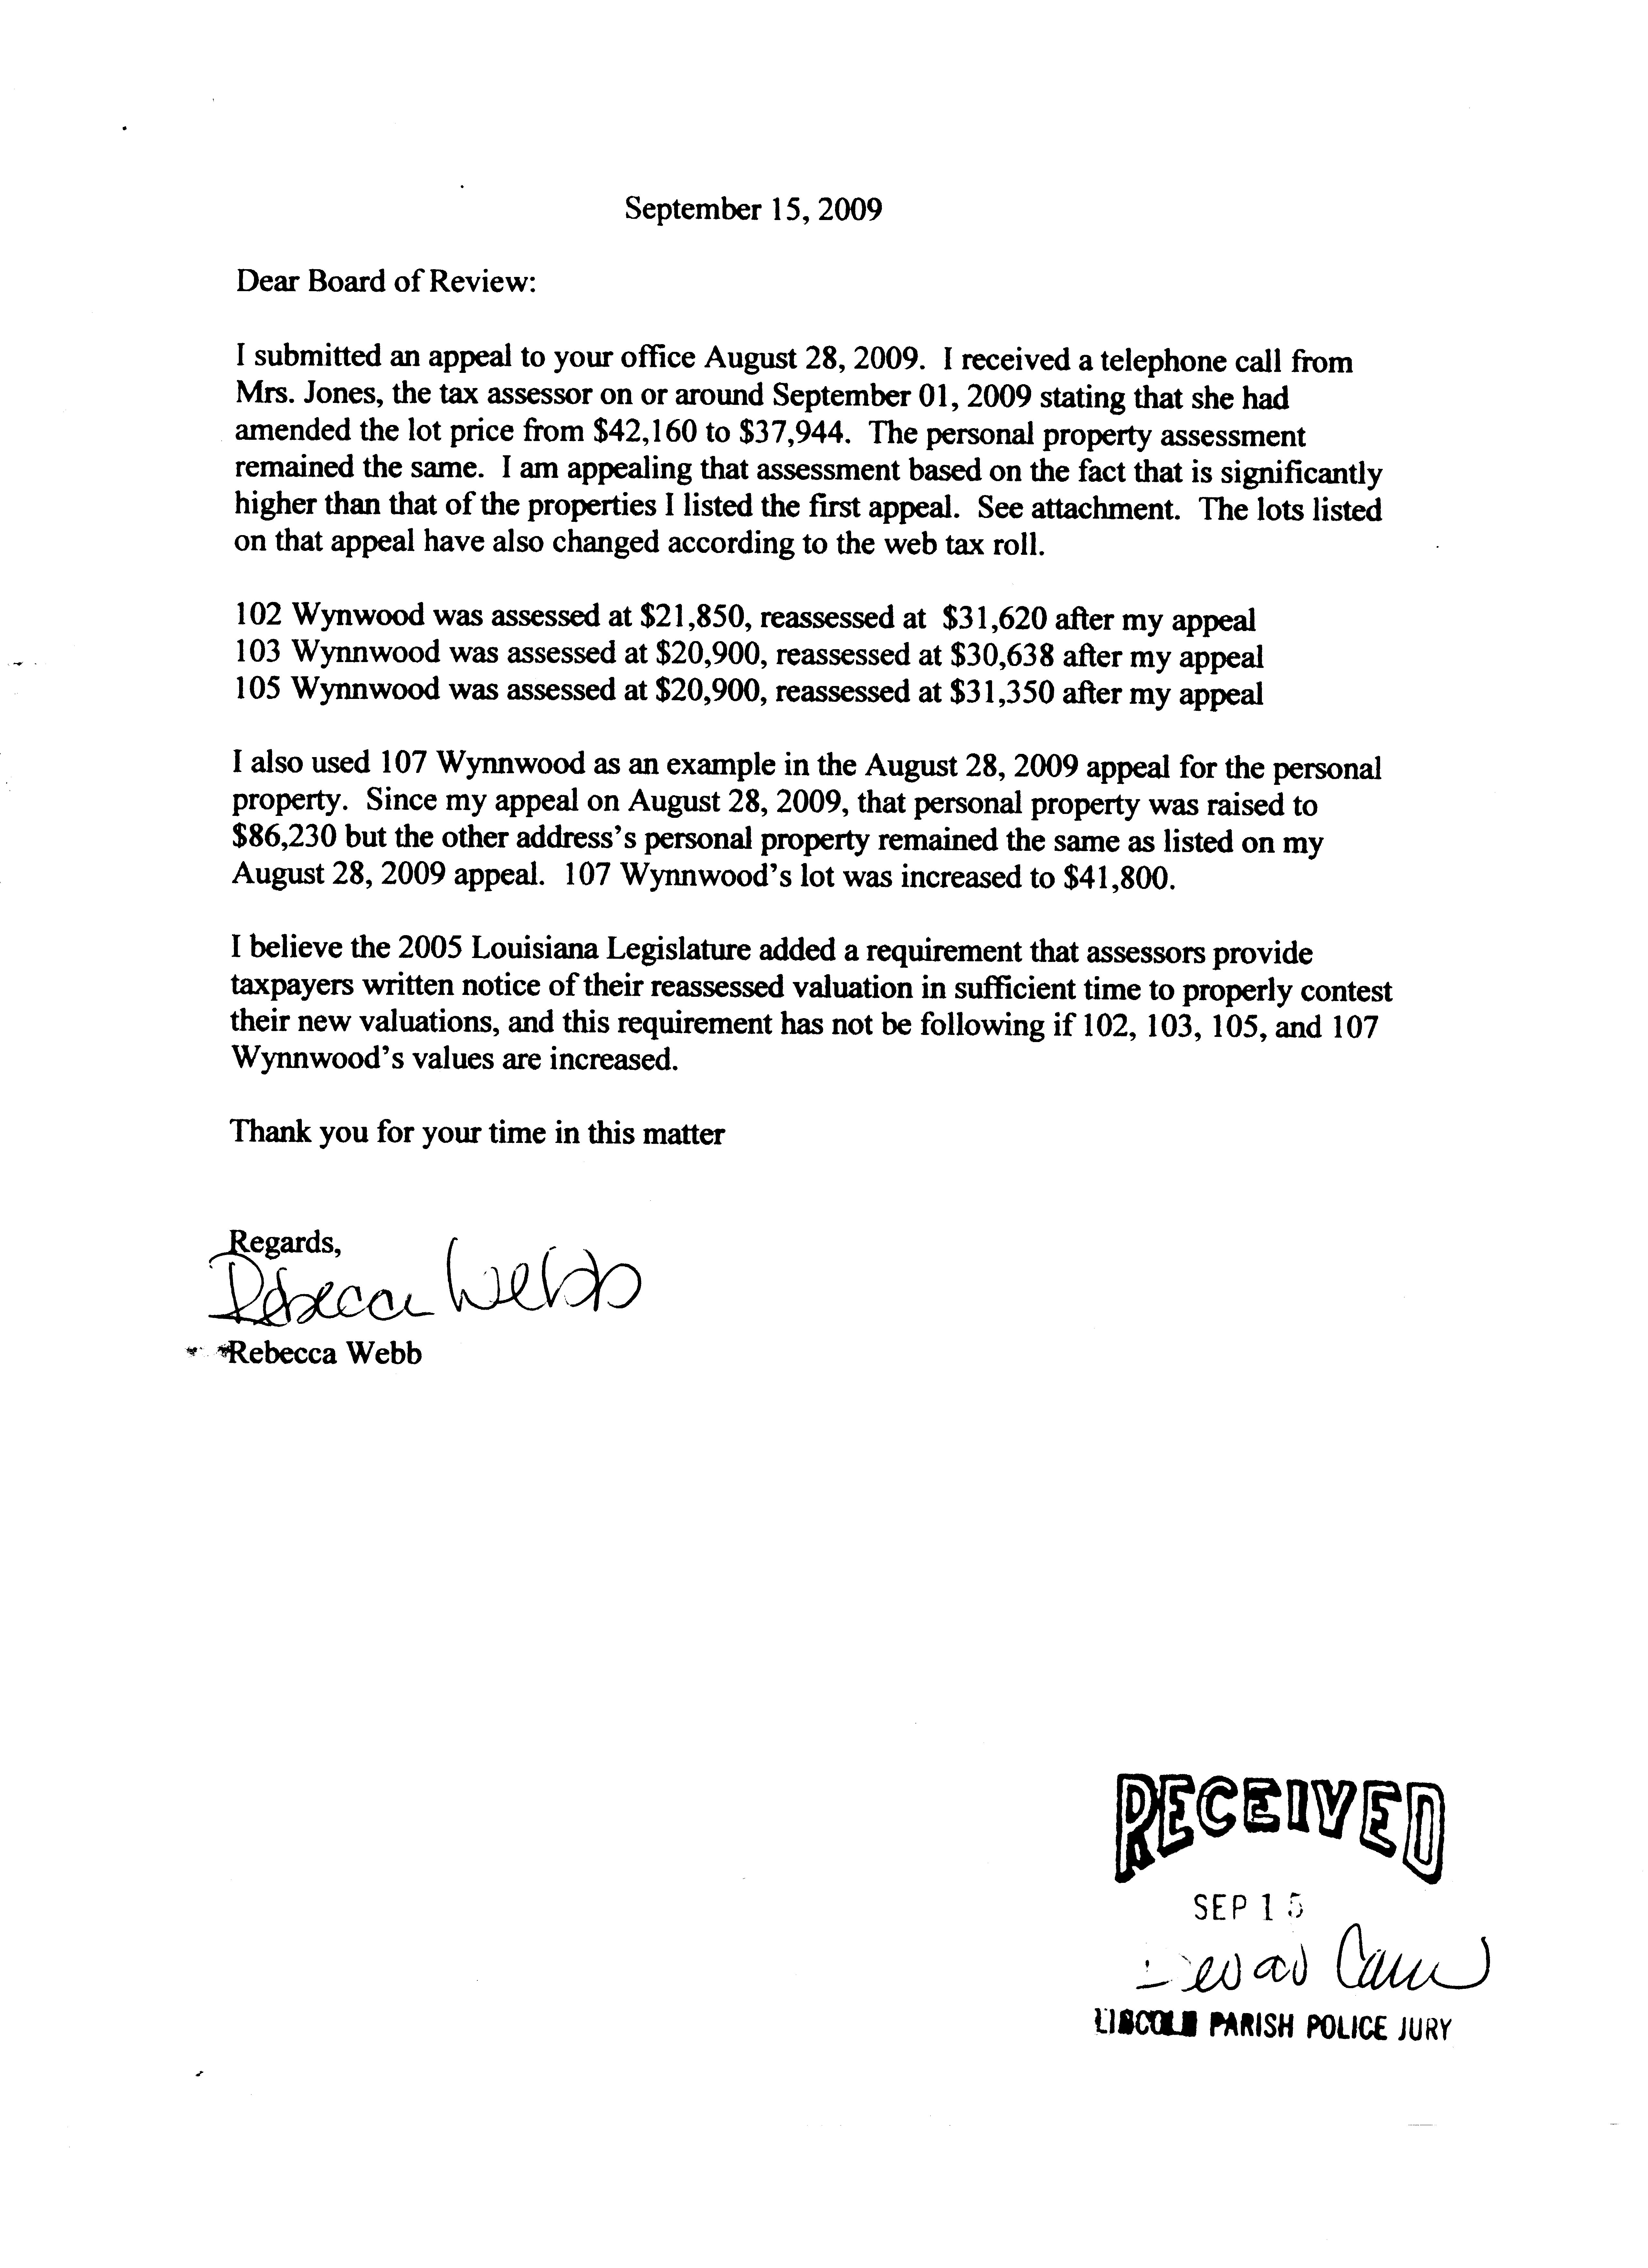 Sample Protest Letter For Property Tax